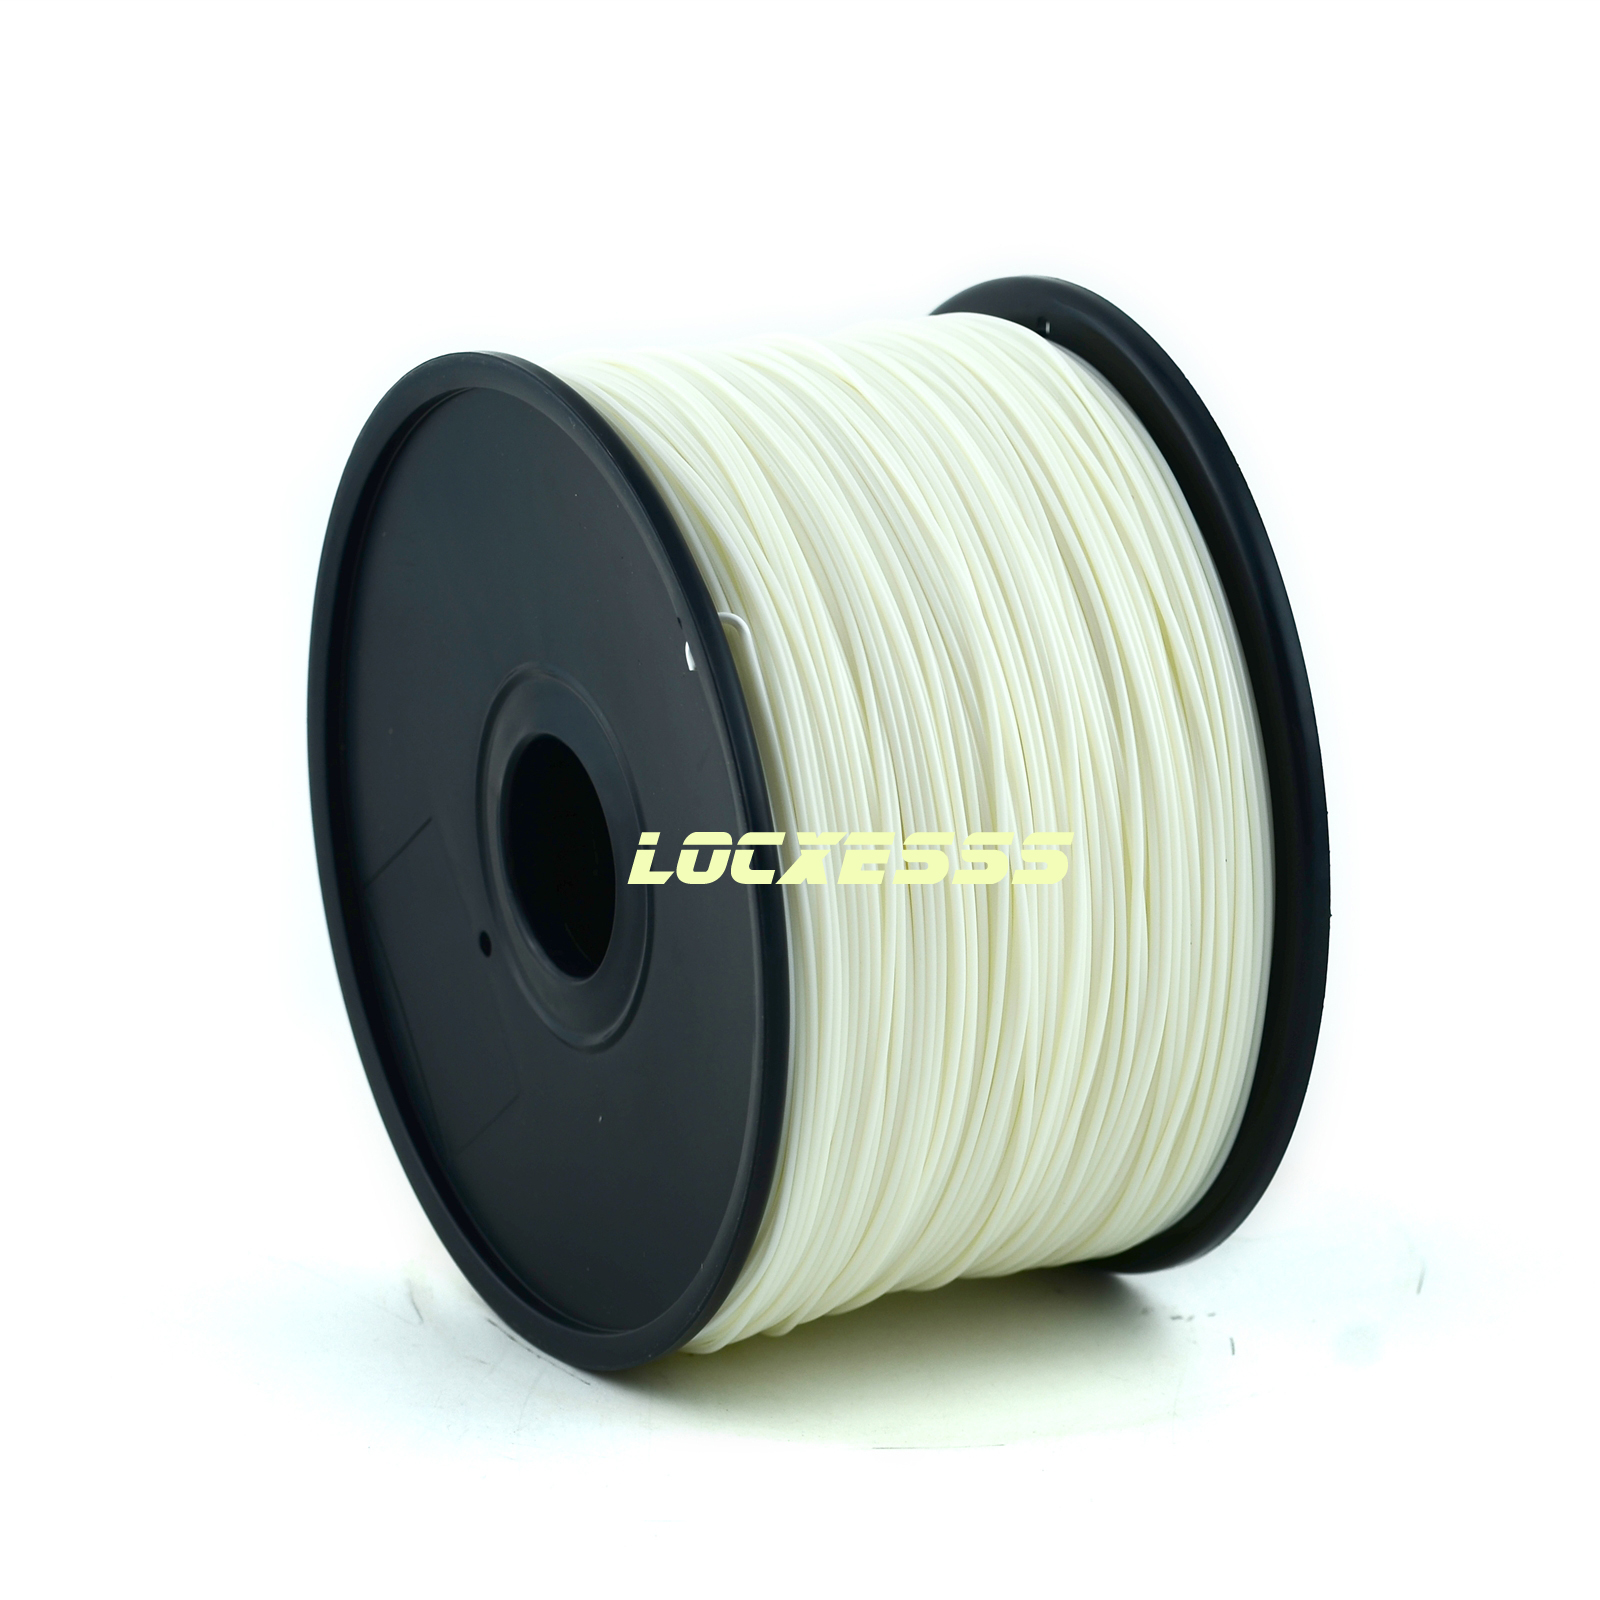 locxess trading abs filament 1 75 mm 1kg weiss 3d drucker reprap prusa makerbot mendel. Black Bedroom Furniture Sets. Home Design Ideas